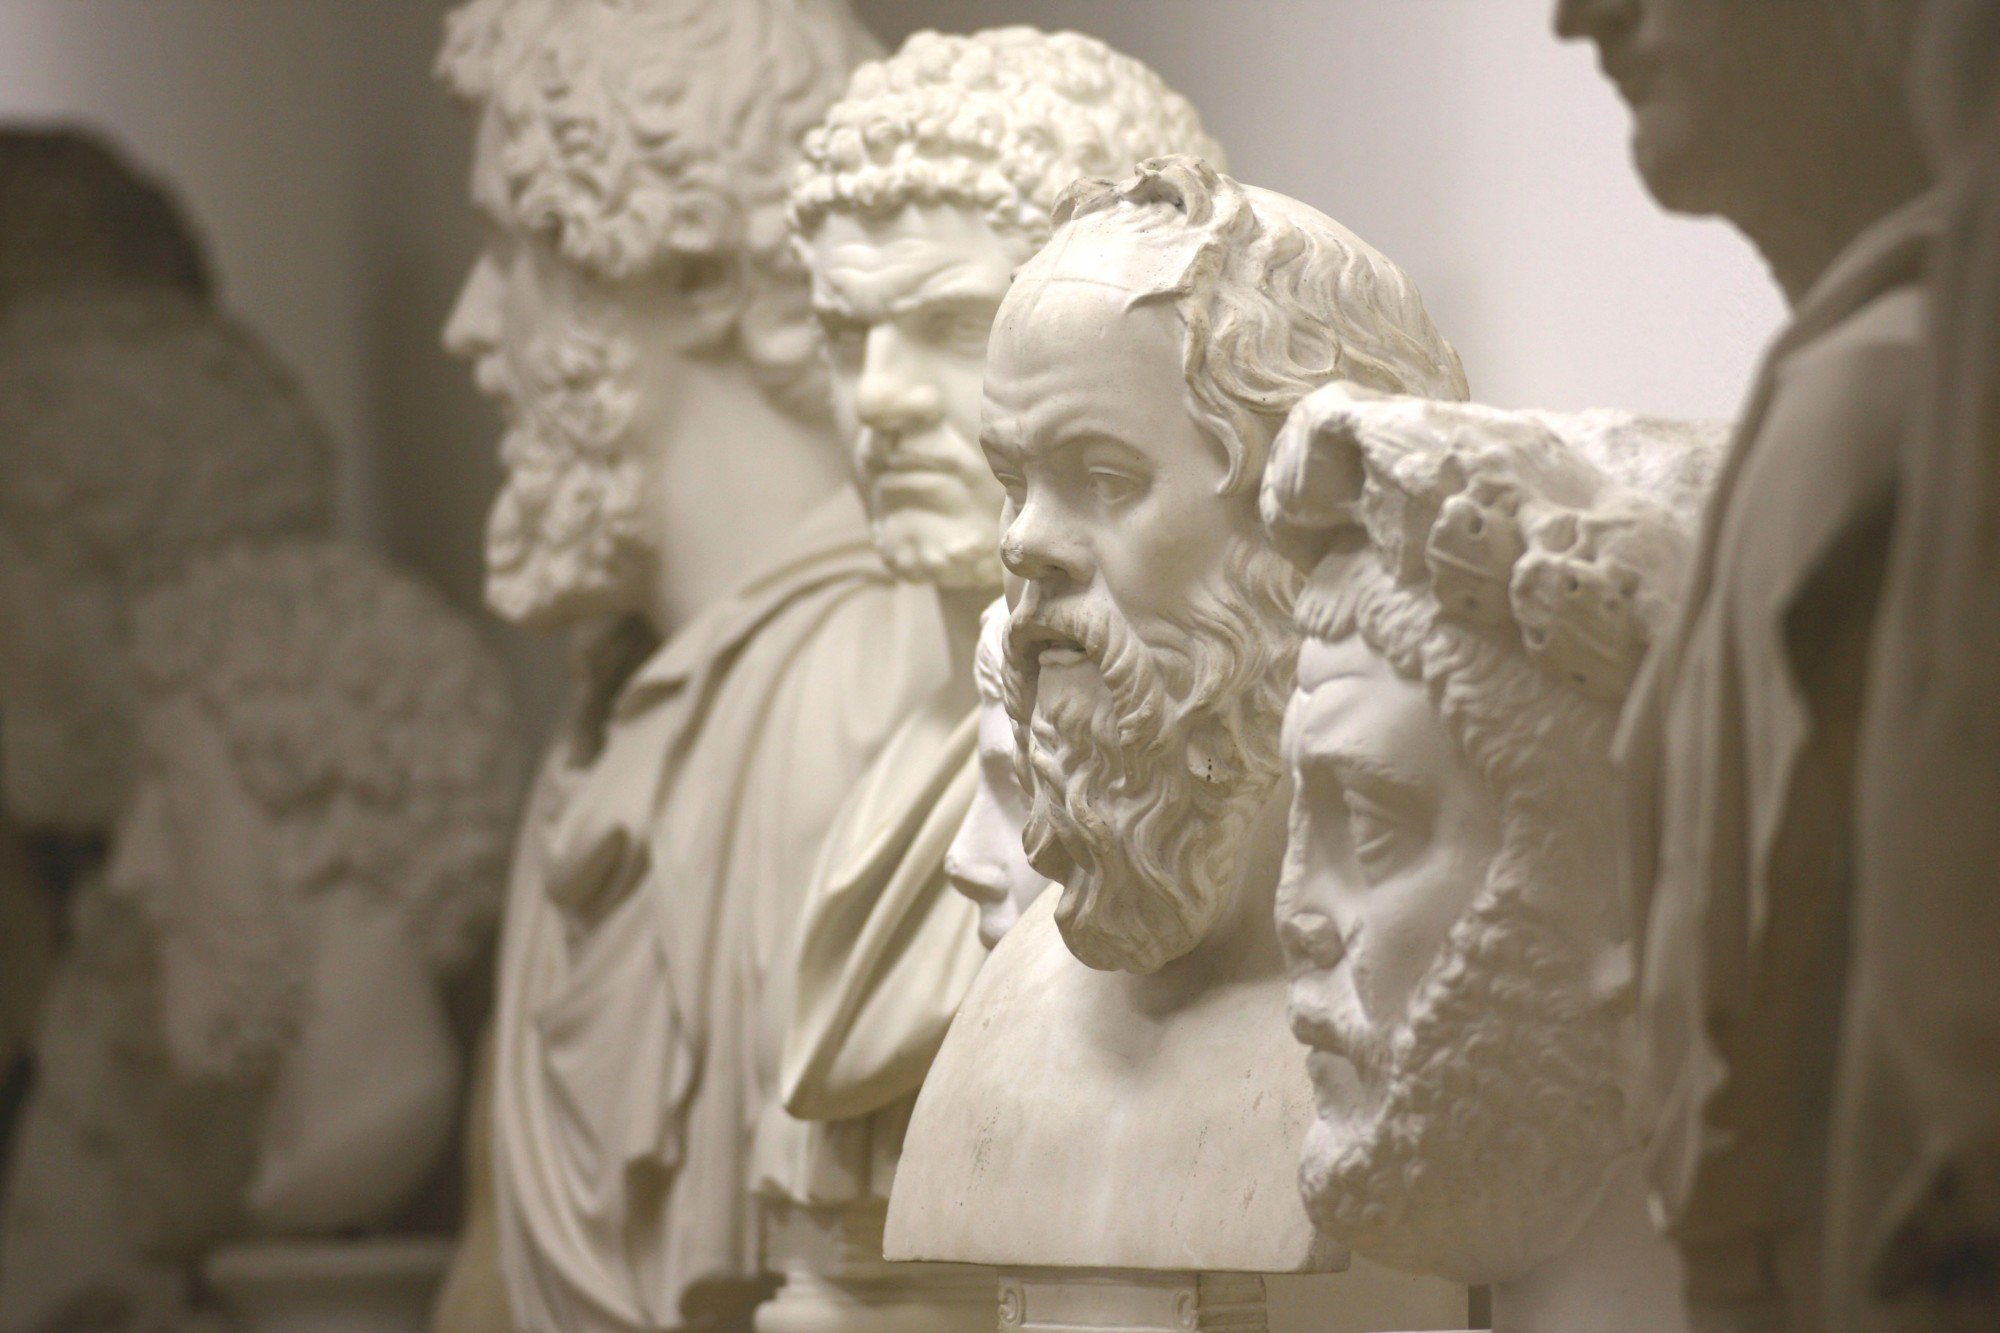 Portrait gallery in the collection of plaster casts with Roman emperors and Greek philosophers (Image: Georg Pöhlein)